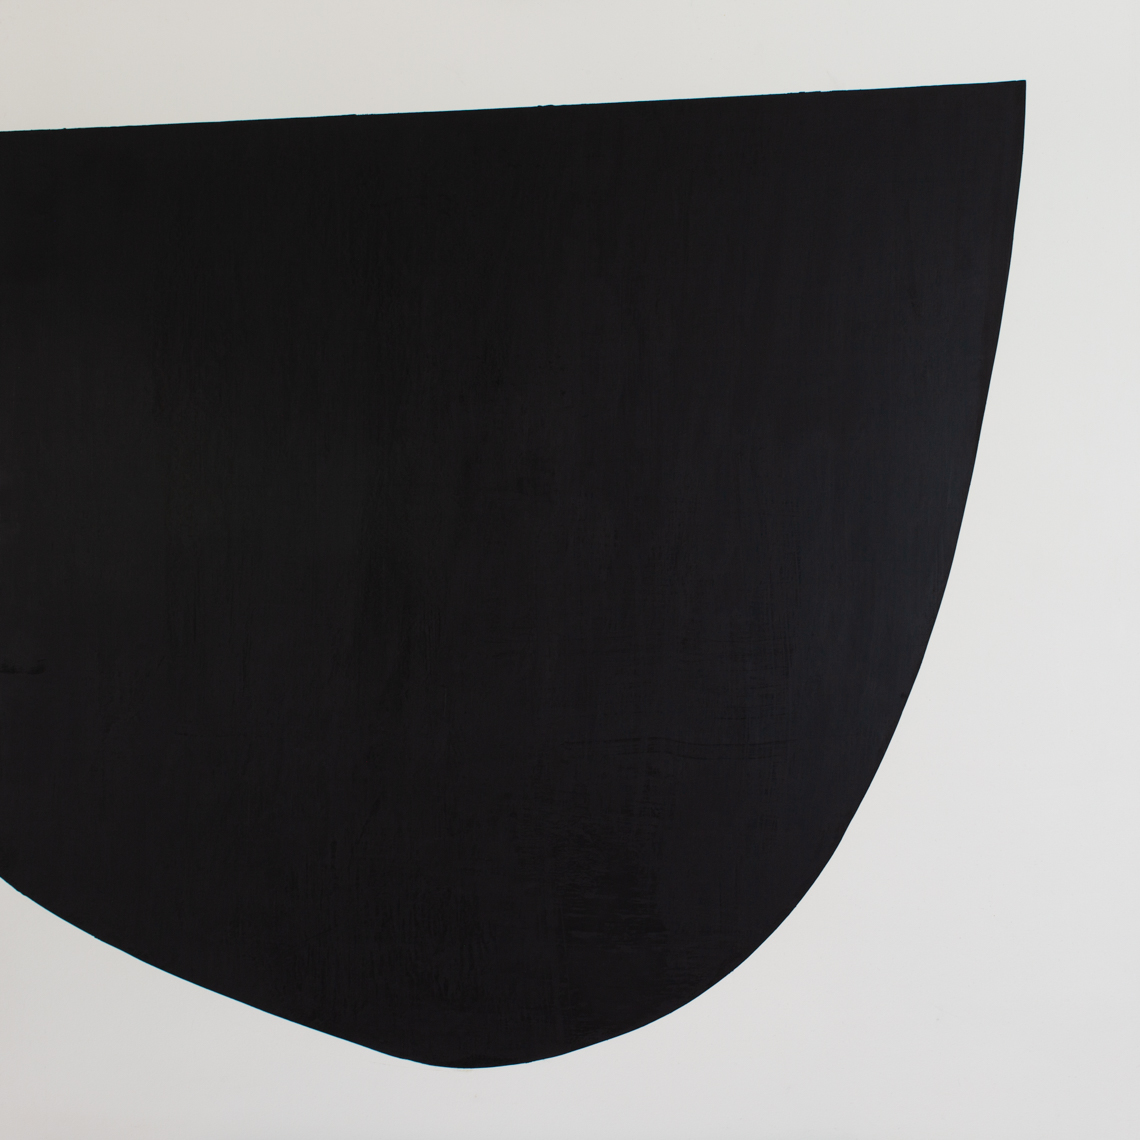 264 from Simplicity series - $4200